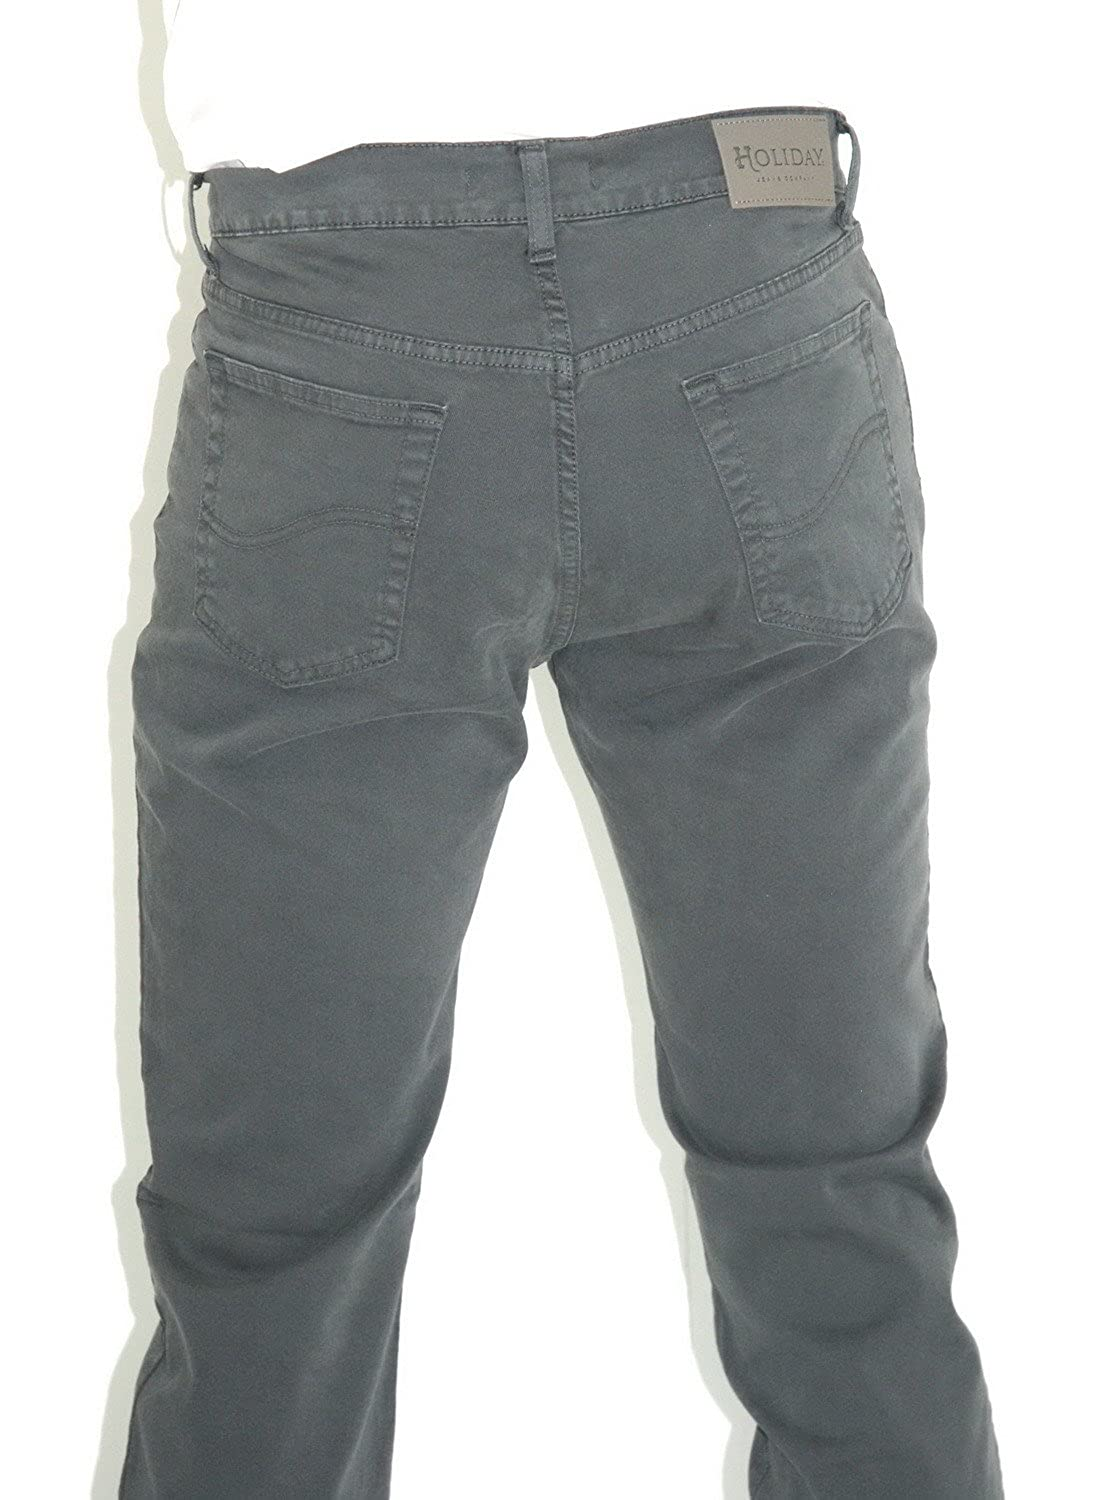 e2d3e73521b0 HOLIDAY MOD. Panama - Pantaloni Cotone Uomo - Elasticizzati - Made in Italy  - ITA 46-60 - Regular Fit: Amazon.it: Abbigliamento